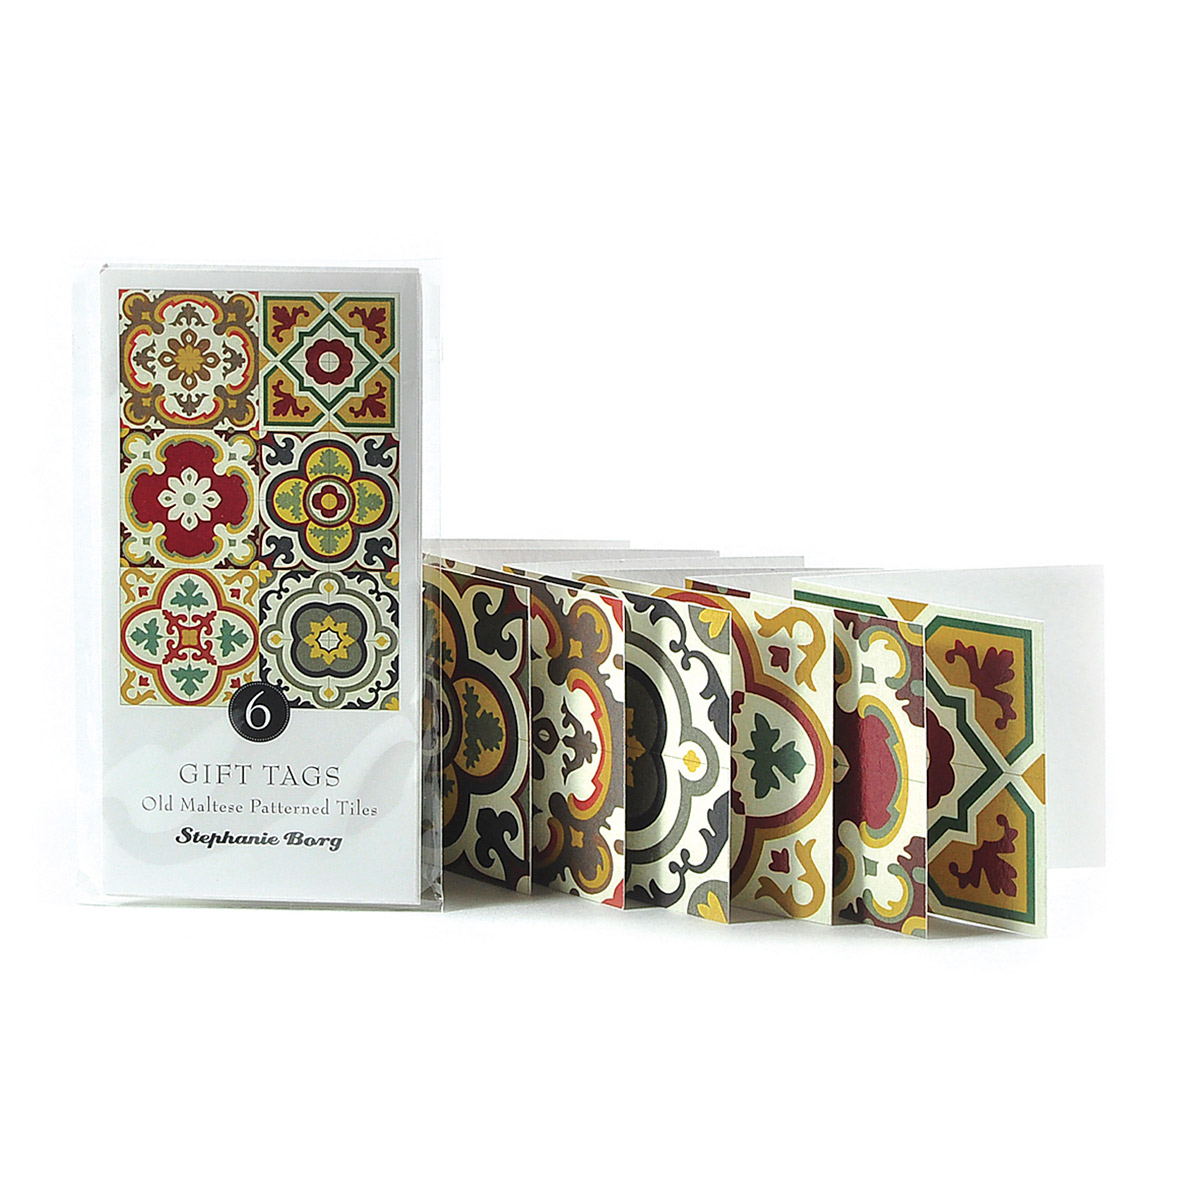 6 Gift Tags with Maltese Tile Patterns, assorted classics